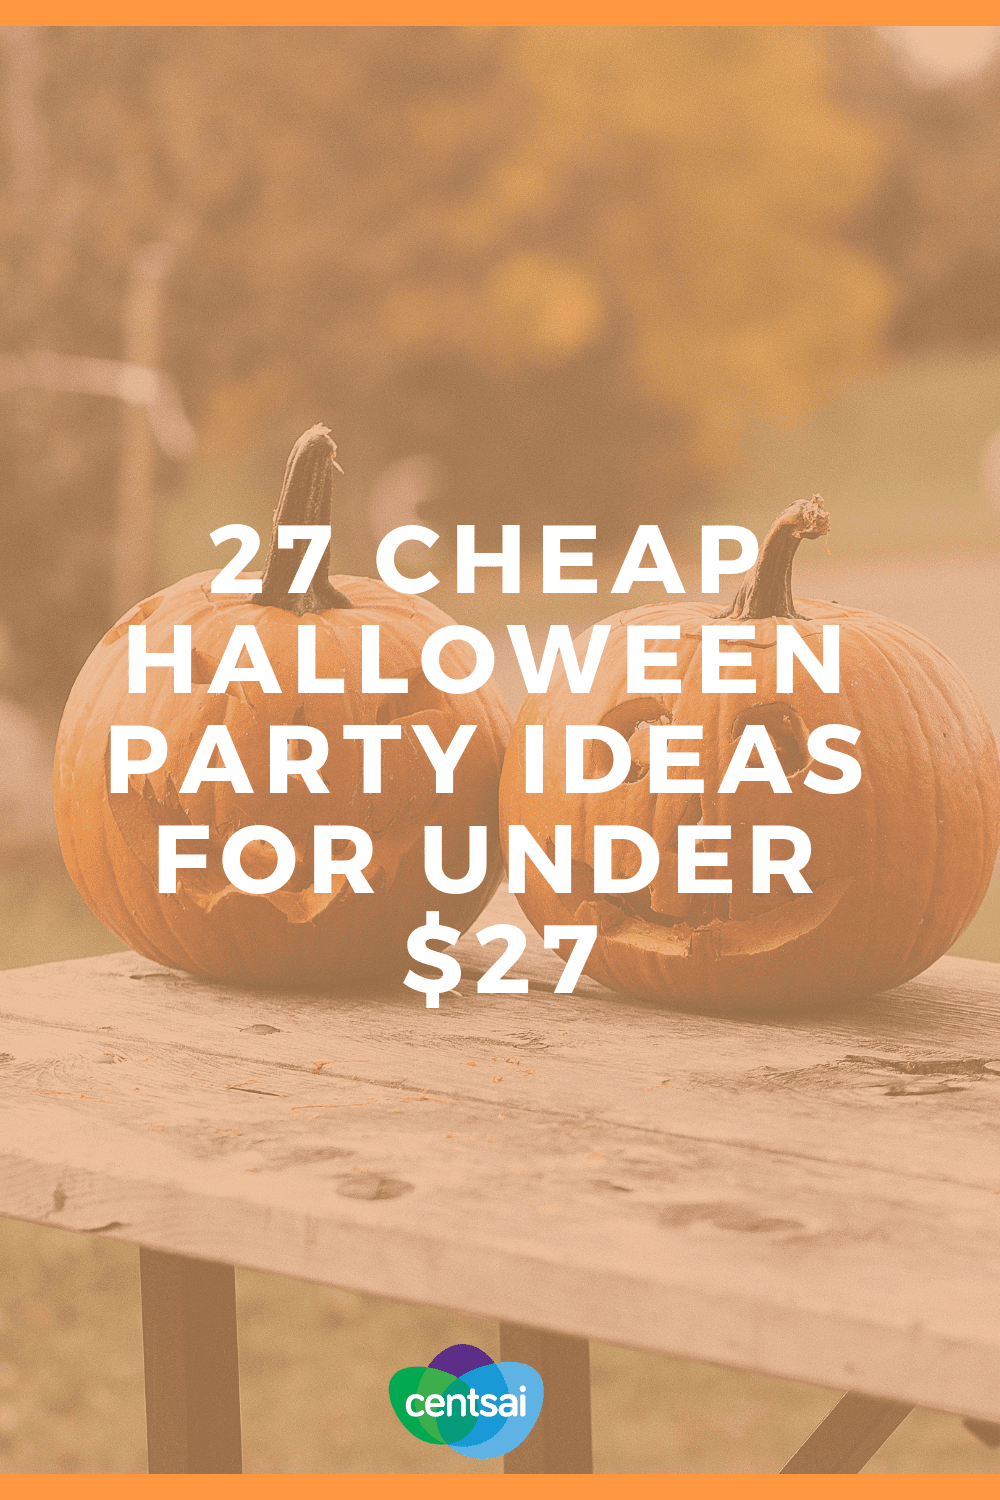 27 Cheap Halloween Party Ideas for Under $27. Halloween fun doesn't have to be frighteningly expensive. Check out these chillingly cheap party ideas! #Halloween #frugaltips